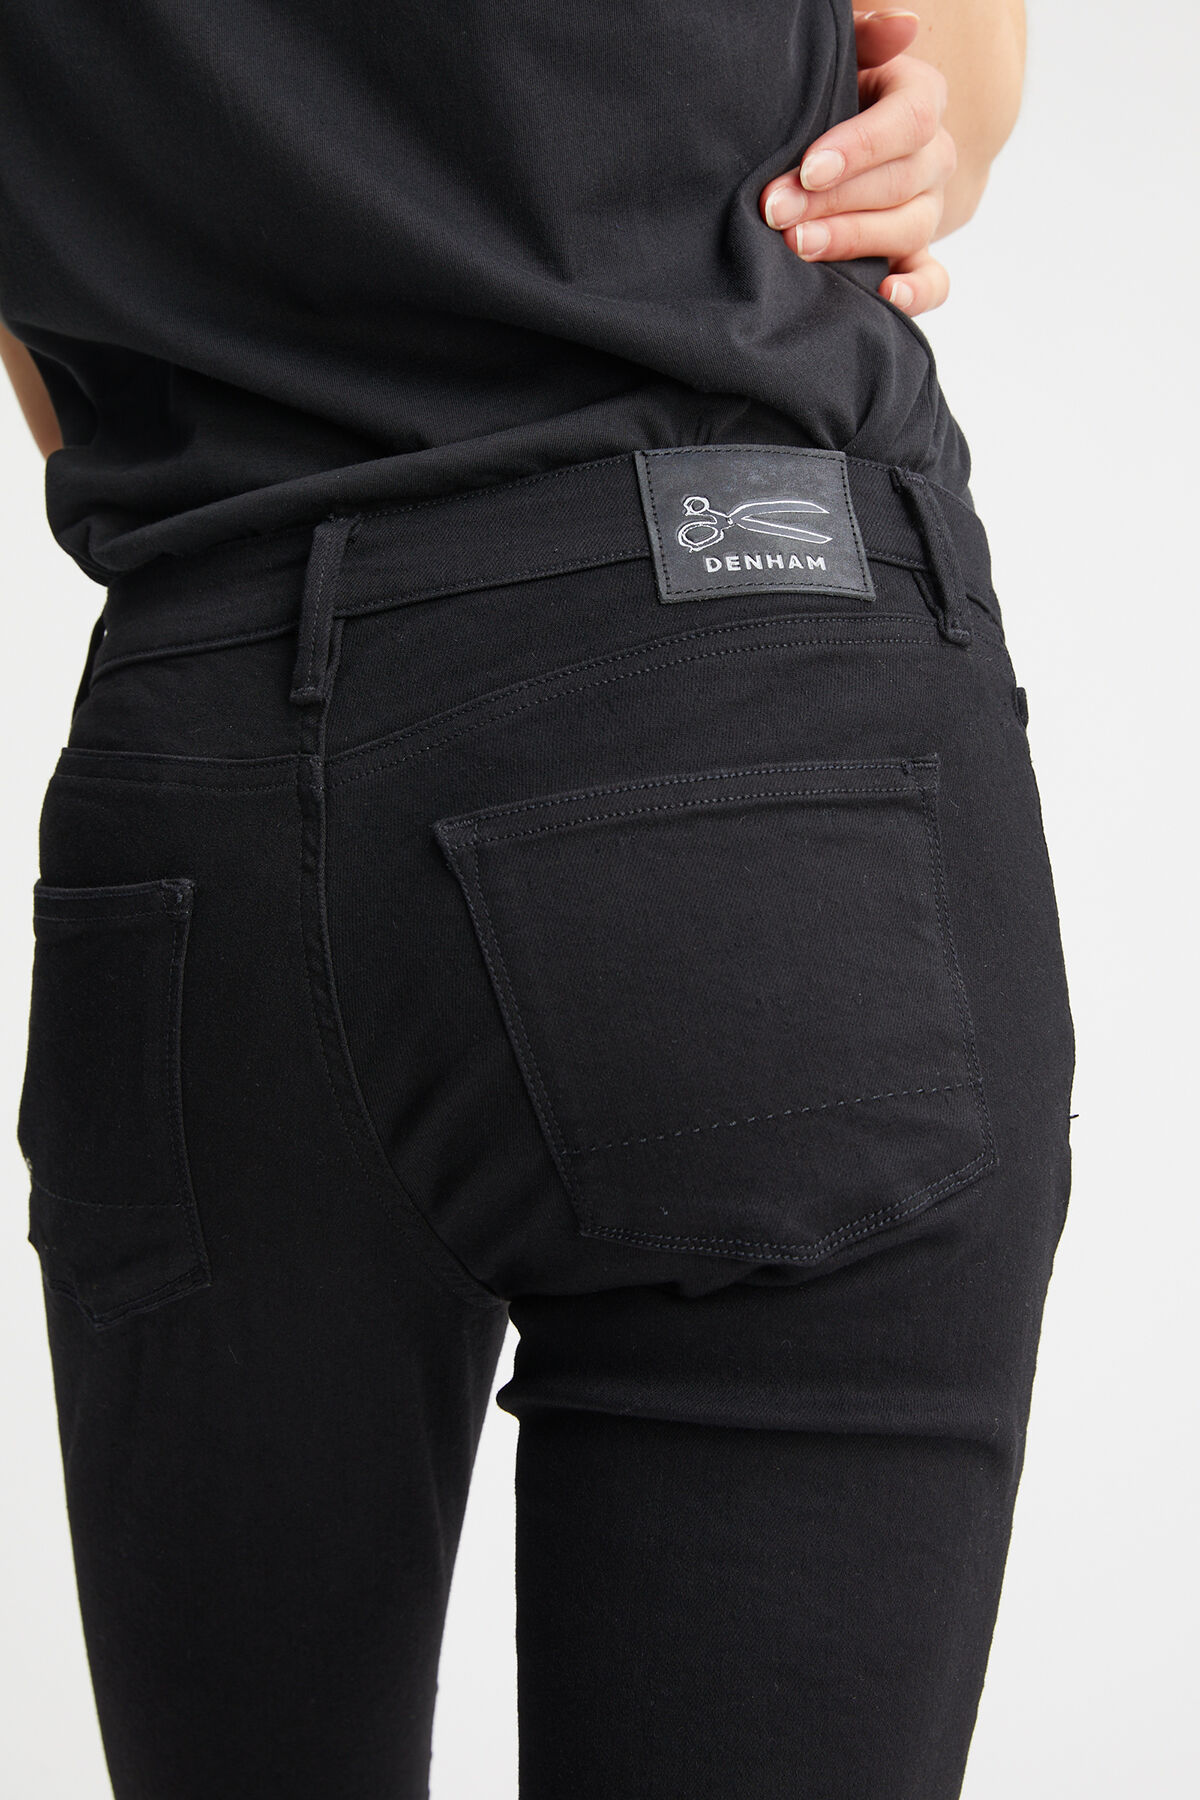 SPRAY Strech Black Denim - Mid-Rise, Tight Fit